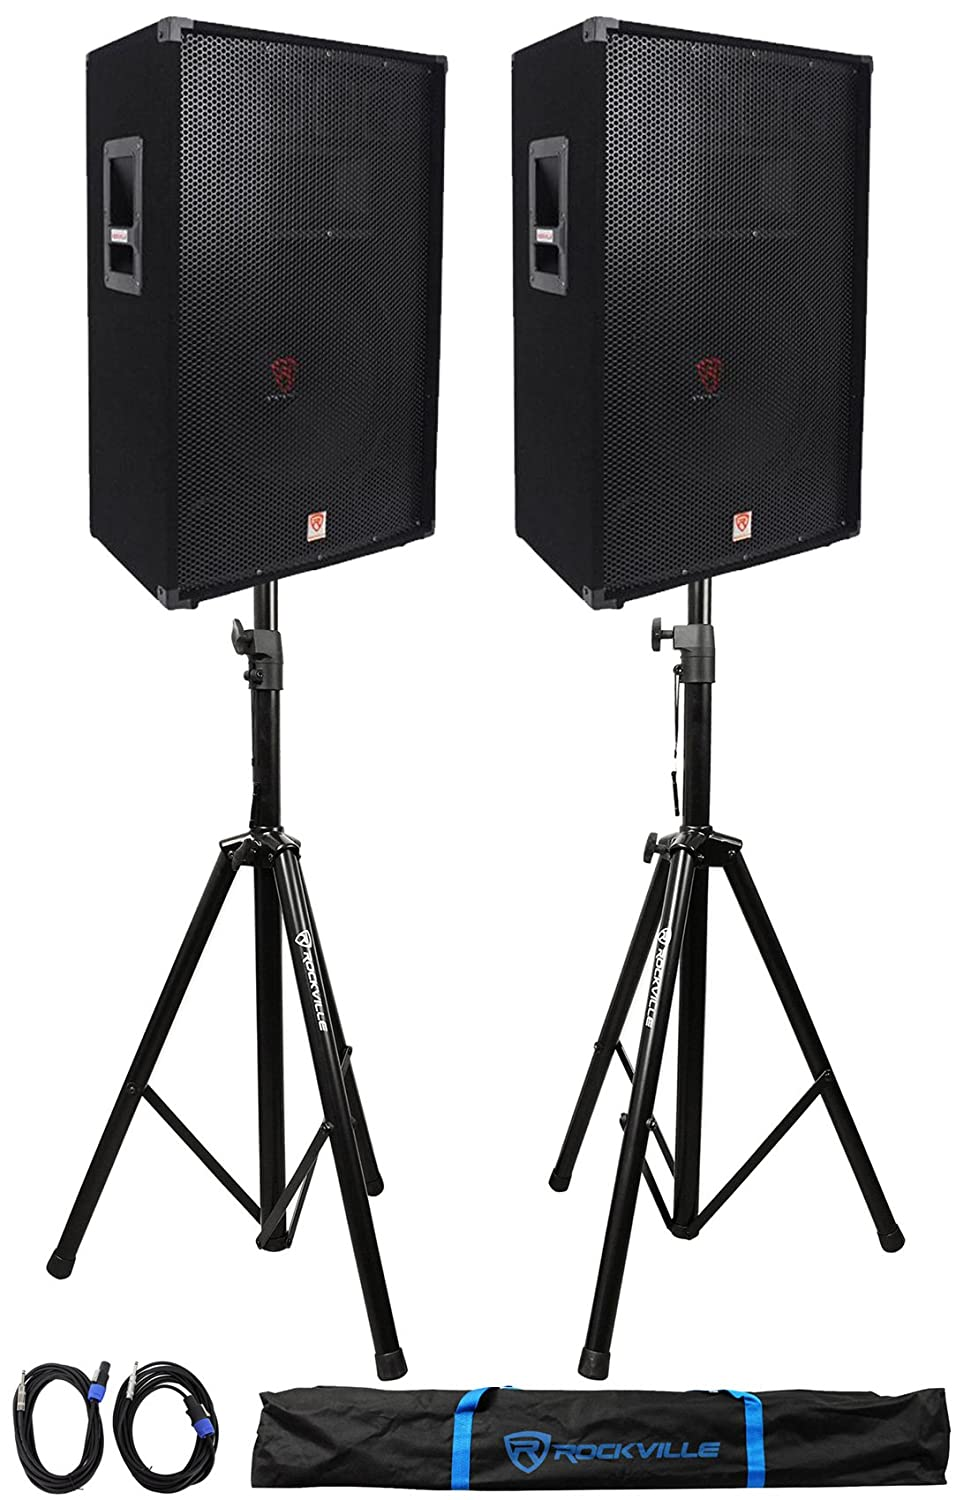 (2) Rockville RSG15 15 3-Way 1500 Watt 8-Ohm DJ PA Speaker +Stands +Cables (2) RSG15+RVSS2-TSNL4